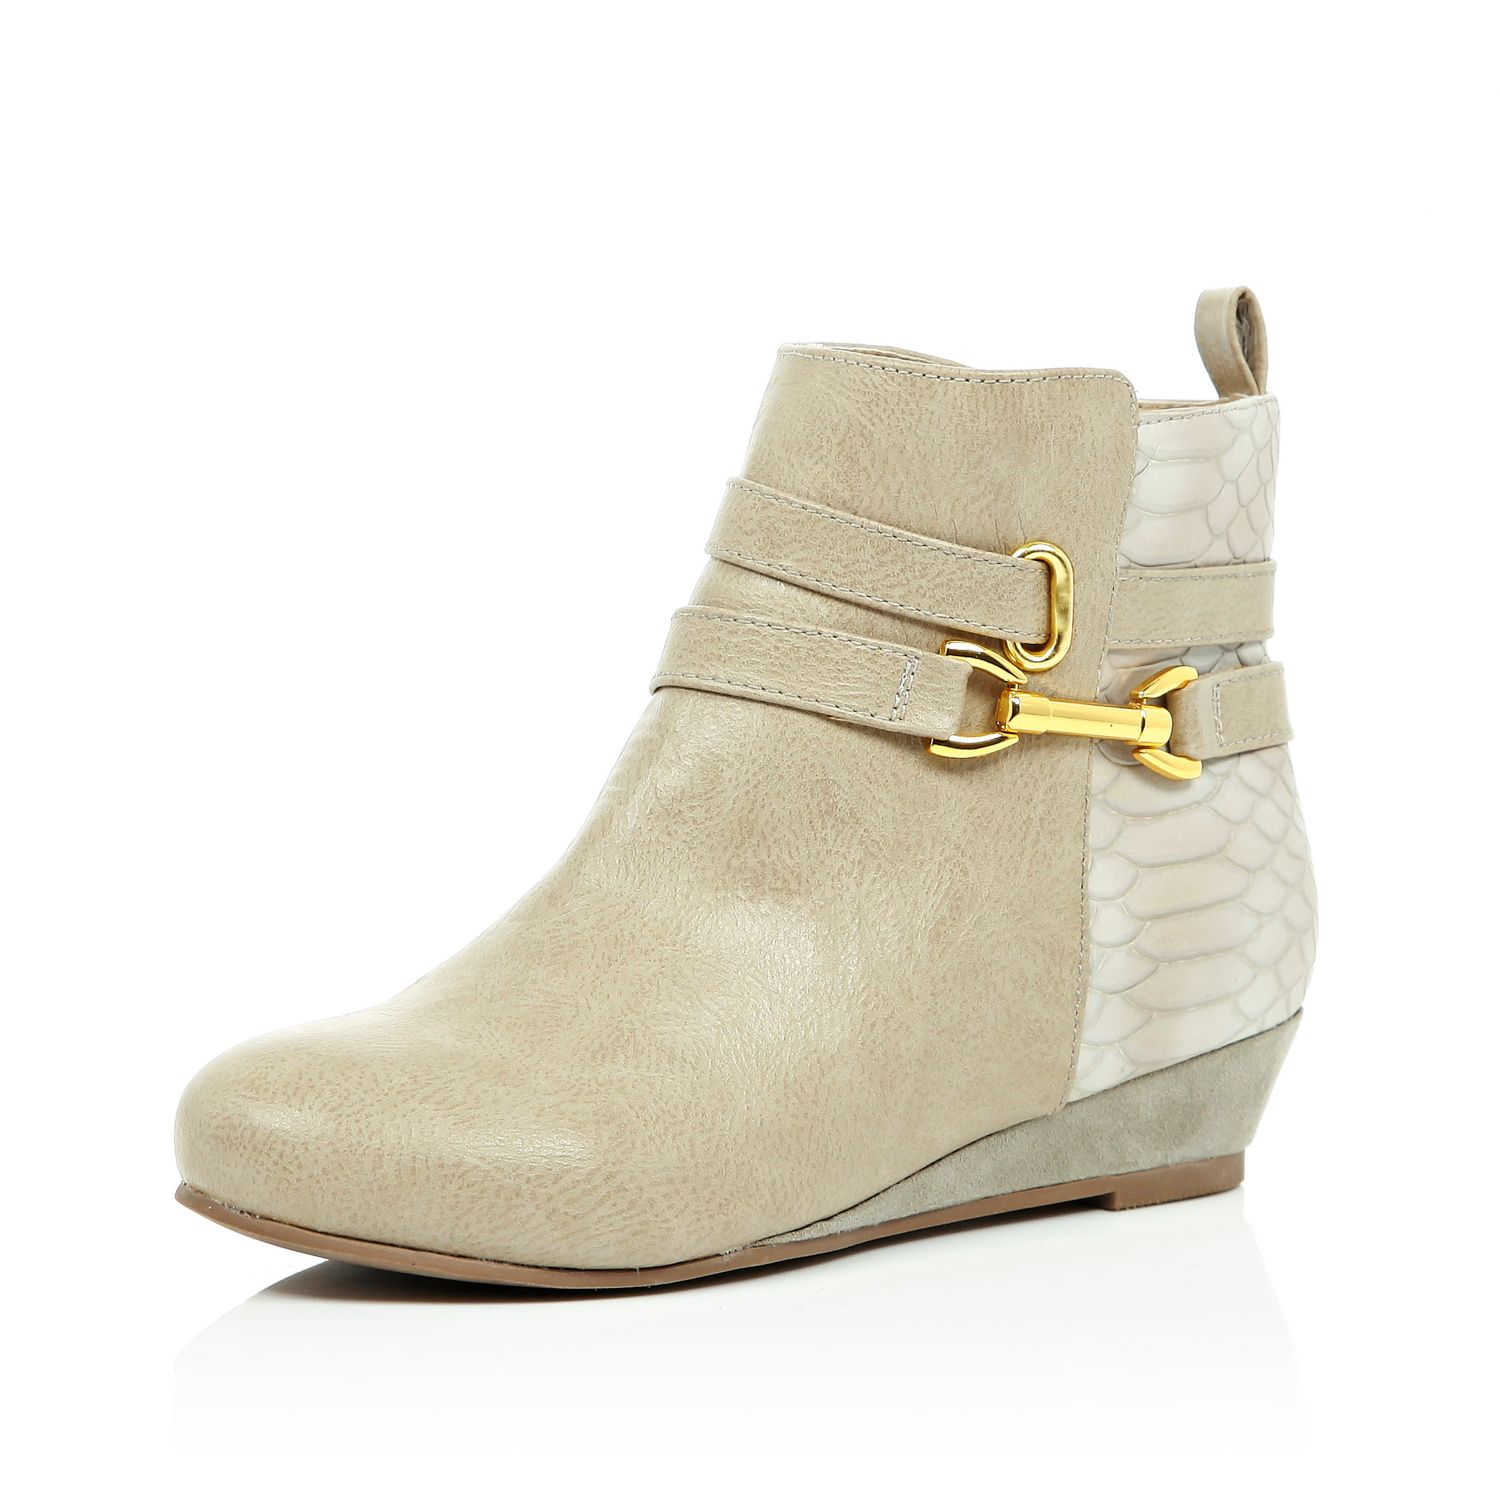 a94937455ca7 River Island Girls Cream Wedge Ankle Boots in Natural - Lyst